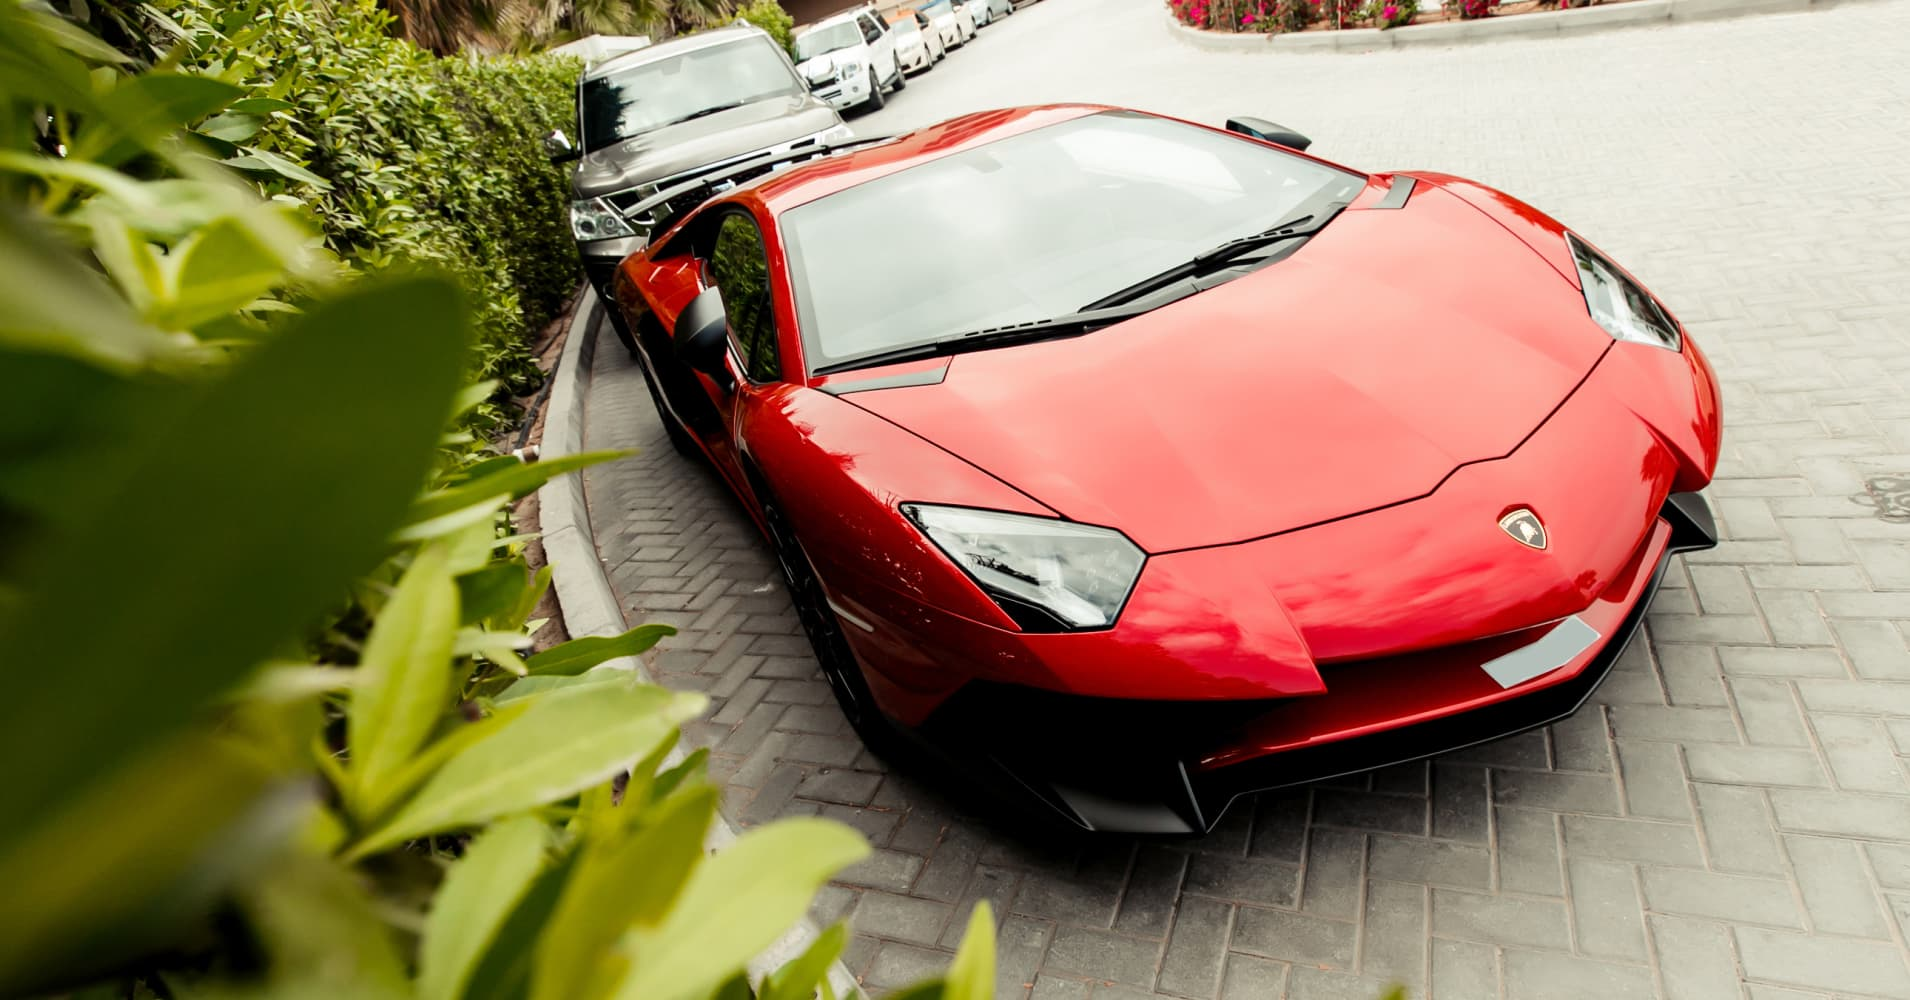 Dream job alert: Get paid $97,000 a year to test supercars and private islands for the 'Amazon for millionaires'